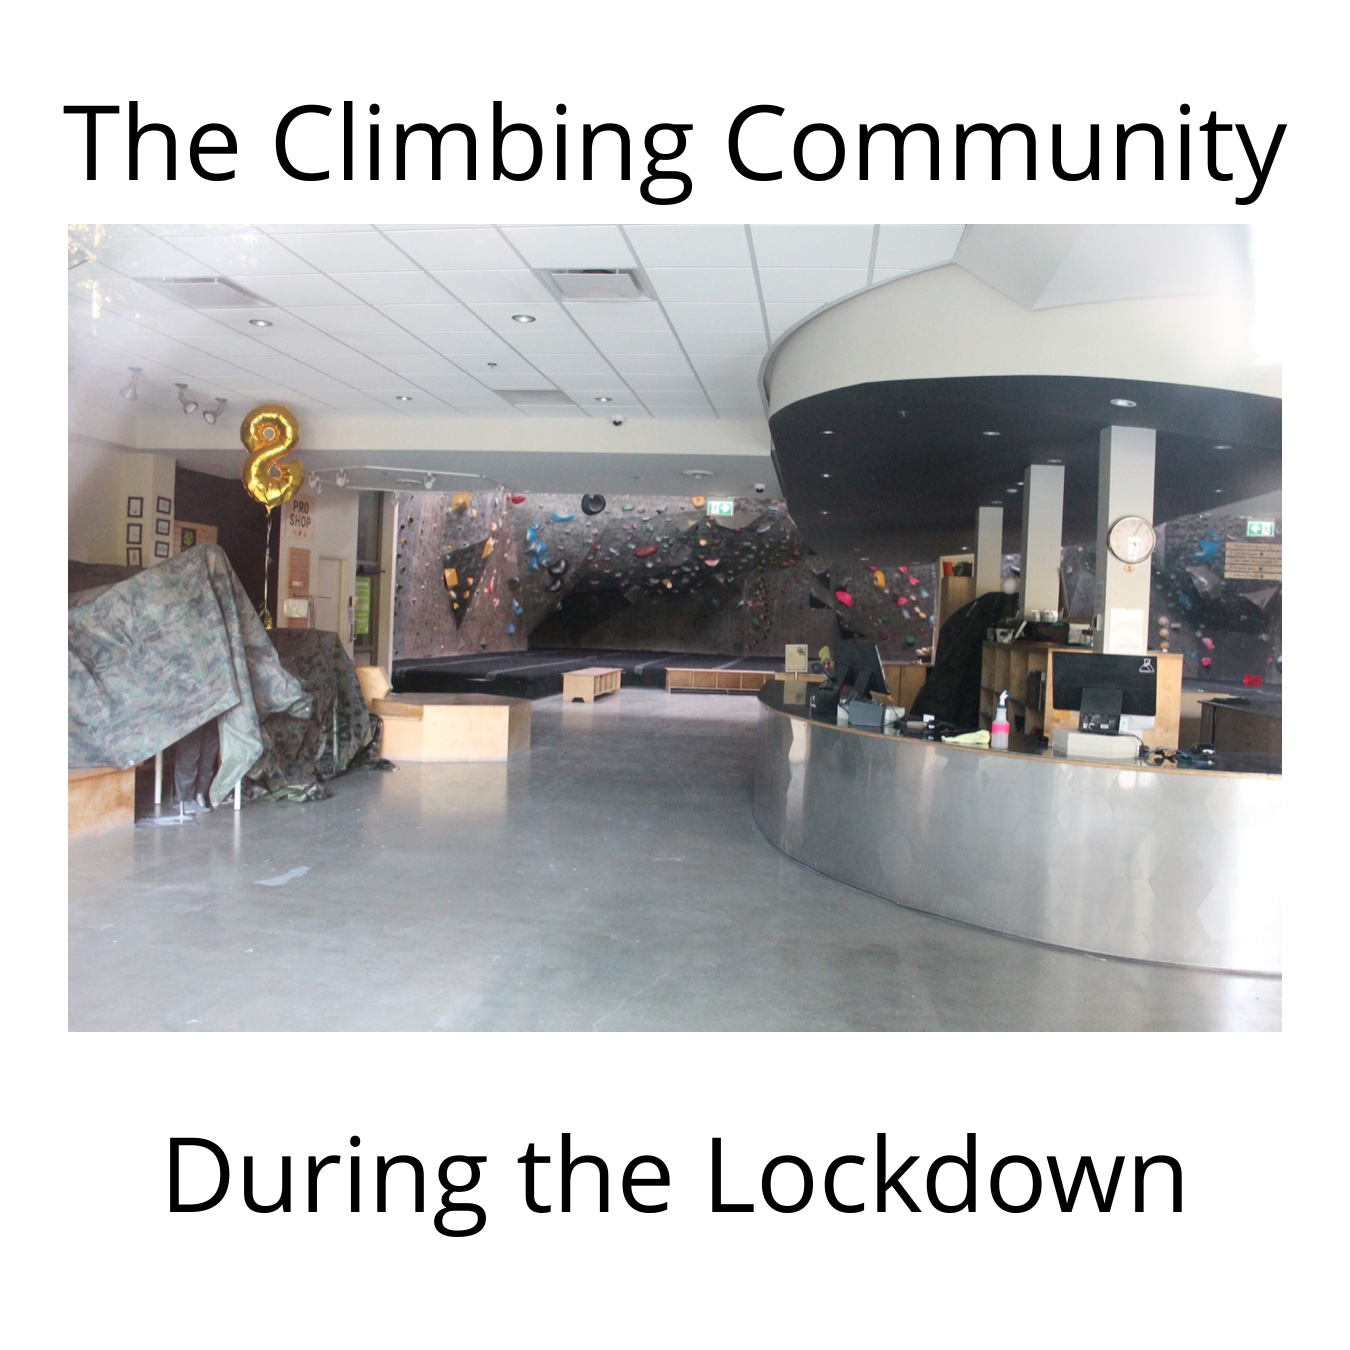 The Climbing Community During the Lockdown